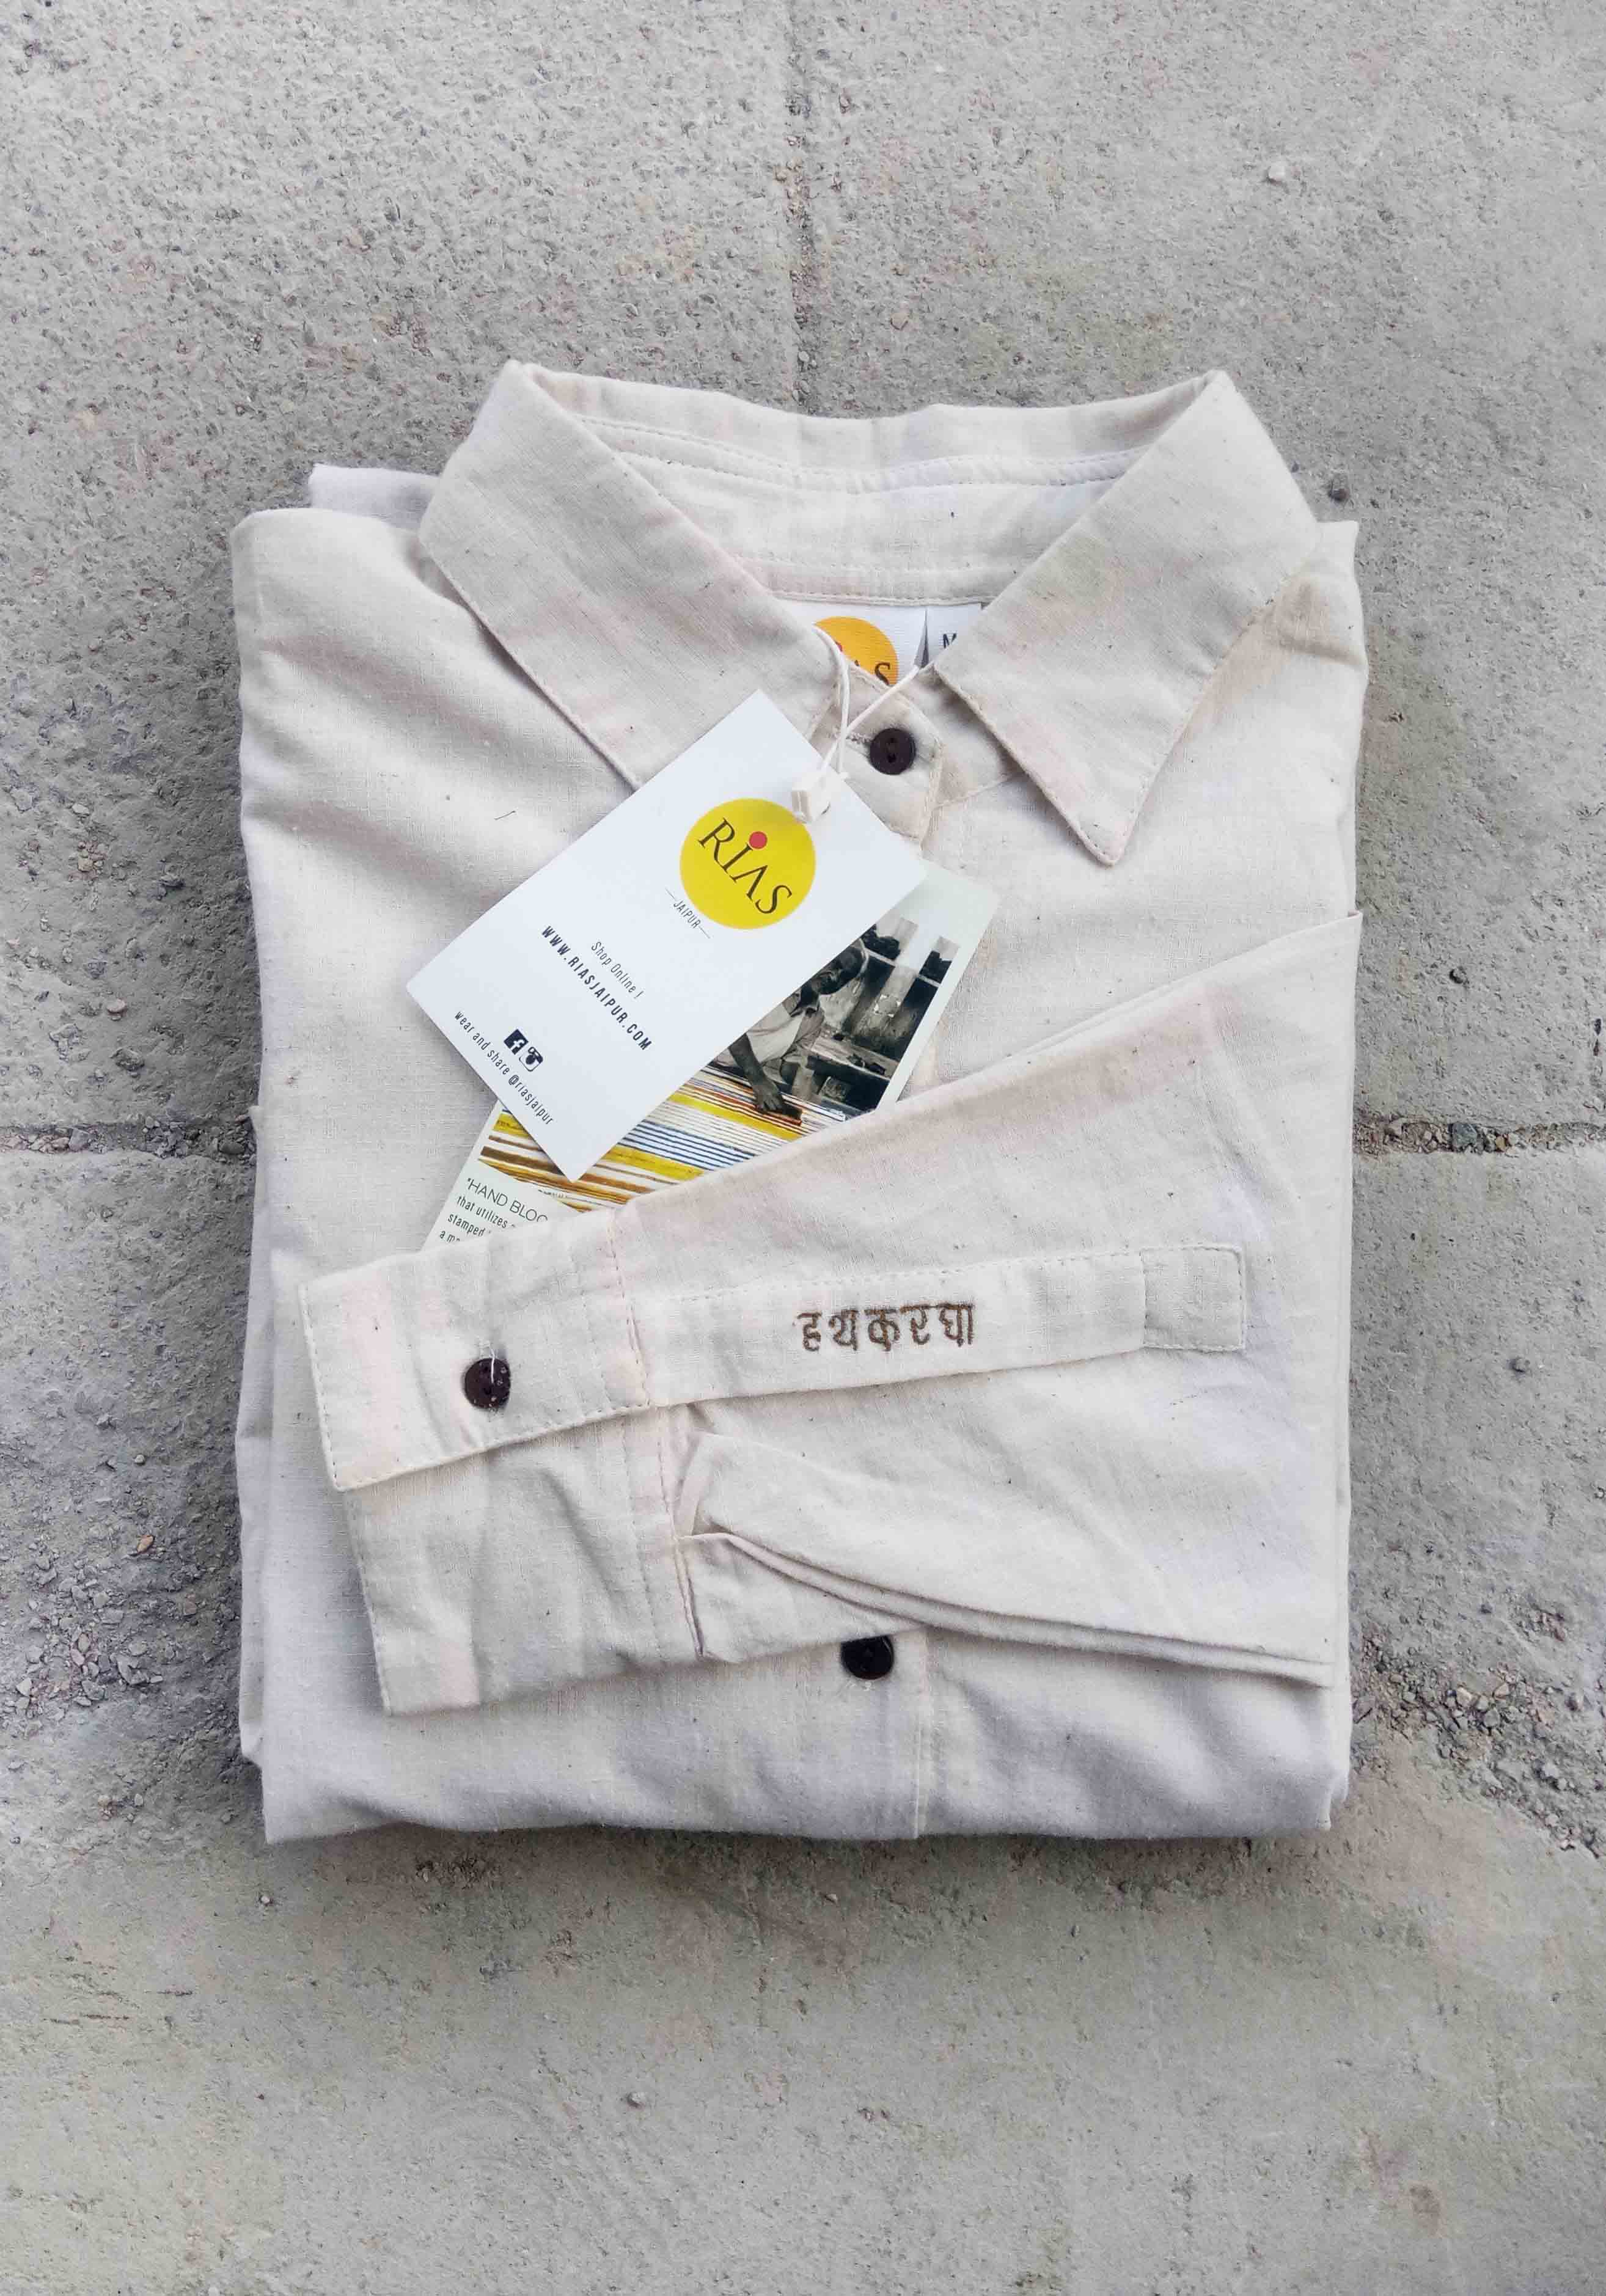 Thoughtfully Designed Clothing Hang-Tags Are Becoming